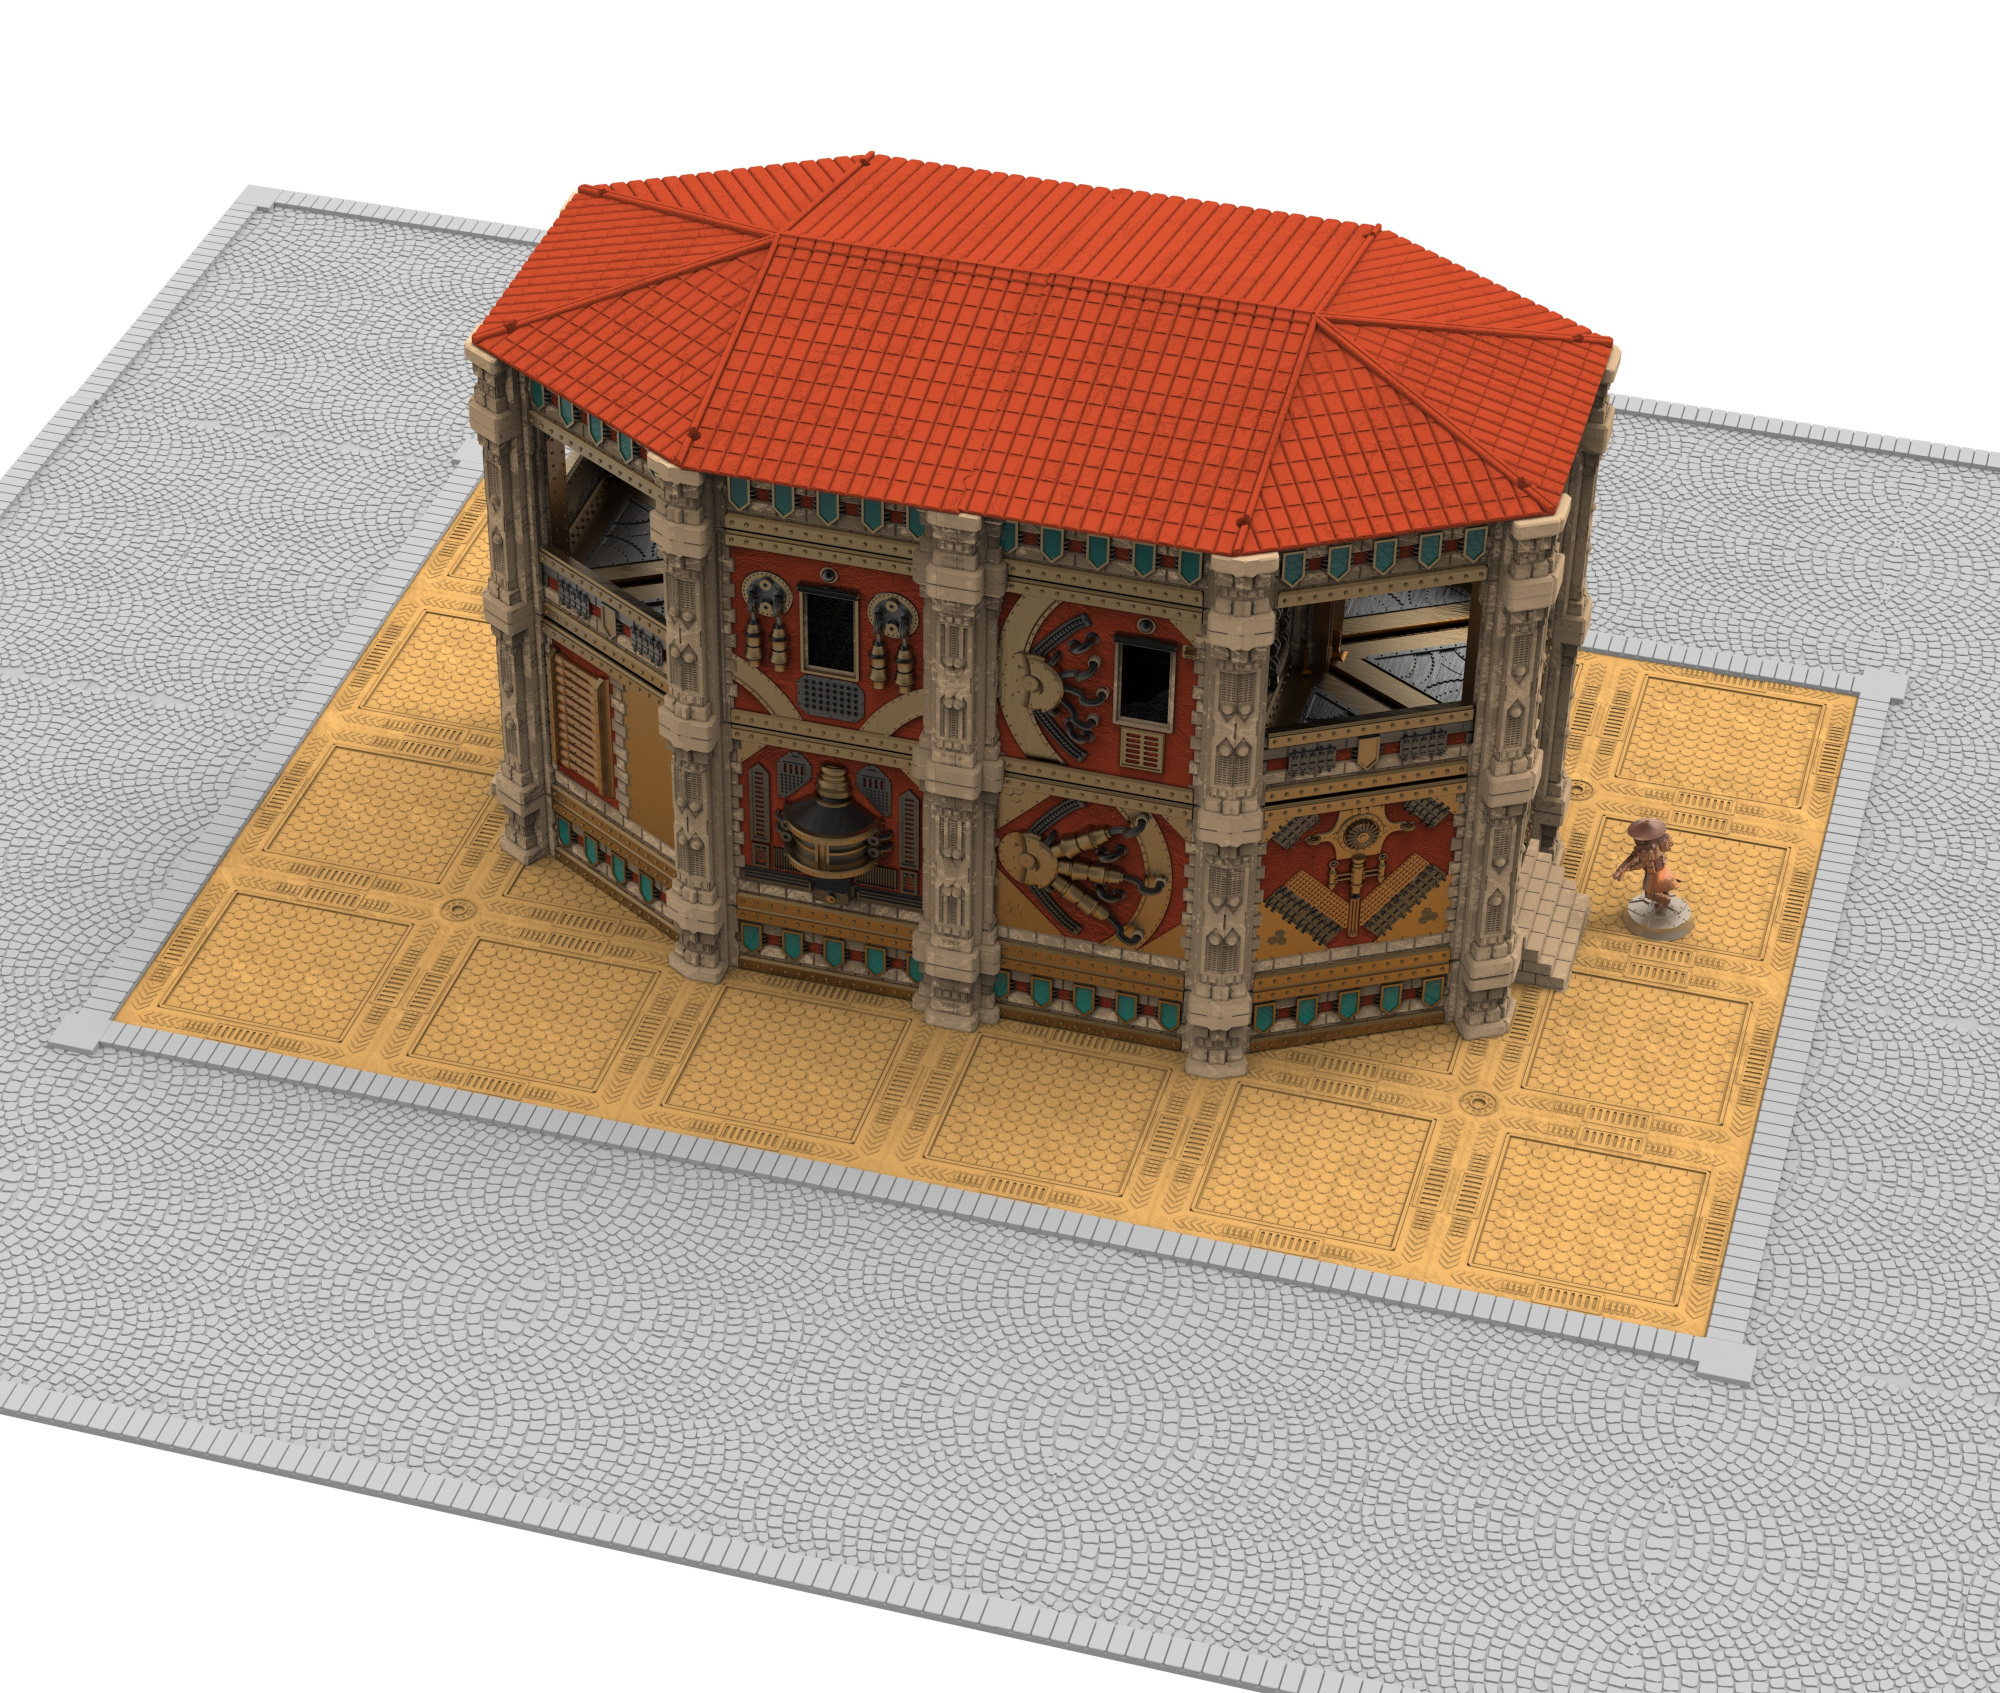 dfqs.jpg Download STL file Modular industrial buildings for wargaming steampunk grimdark terrain • 3D print template, Alario